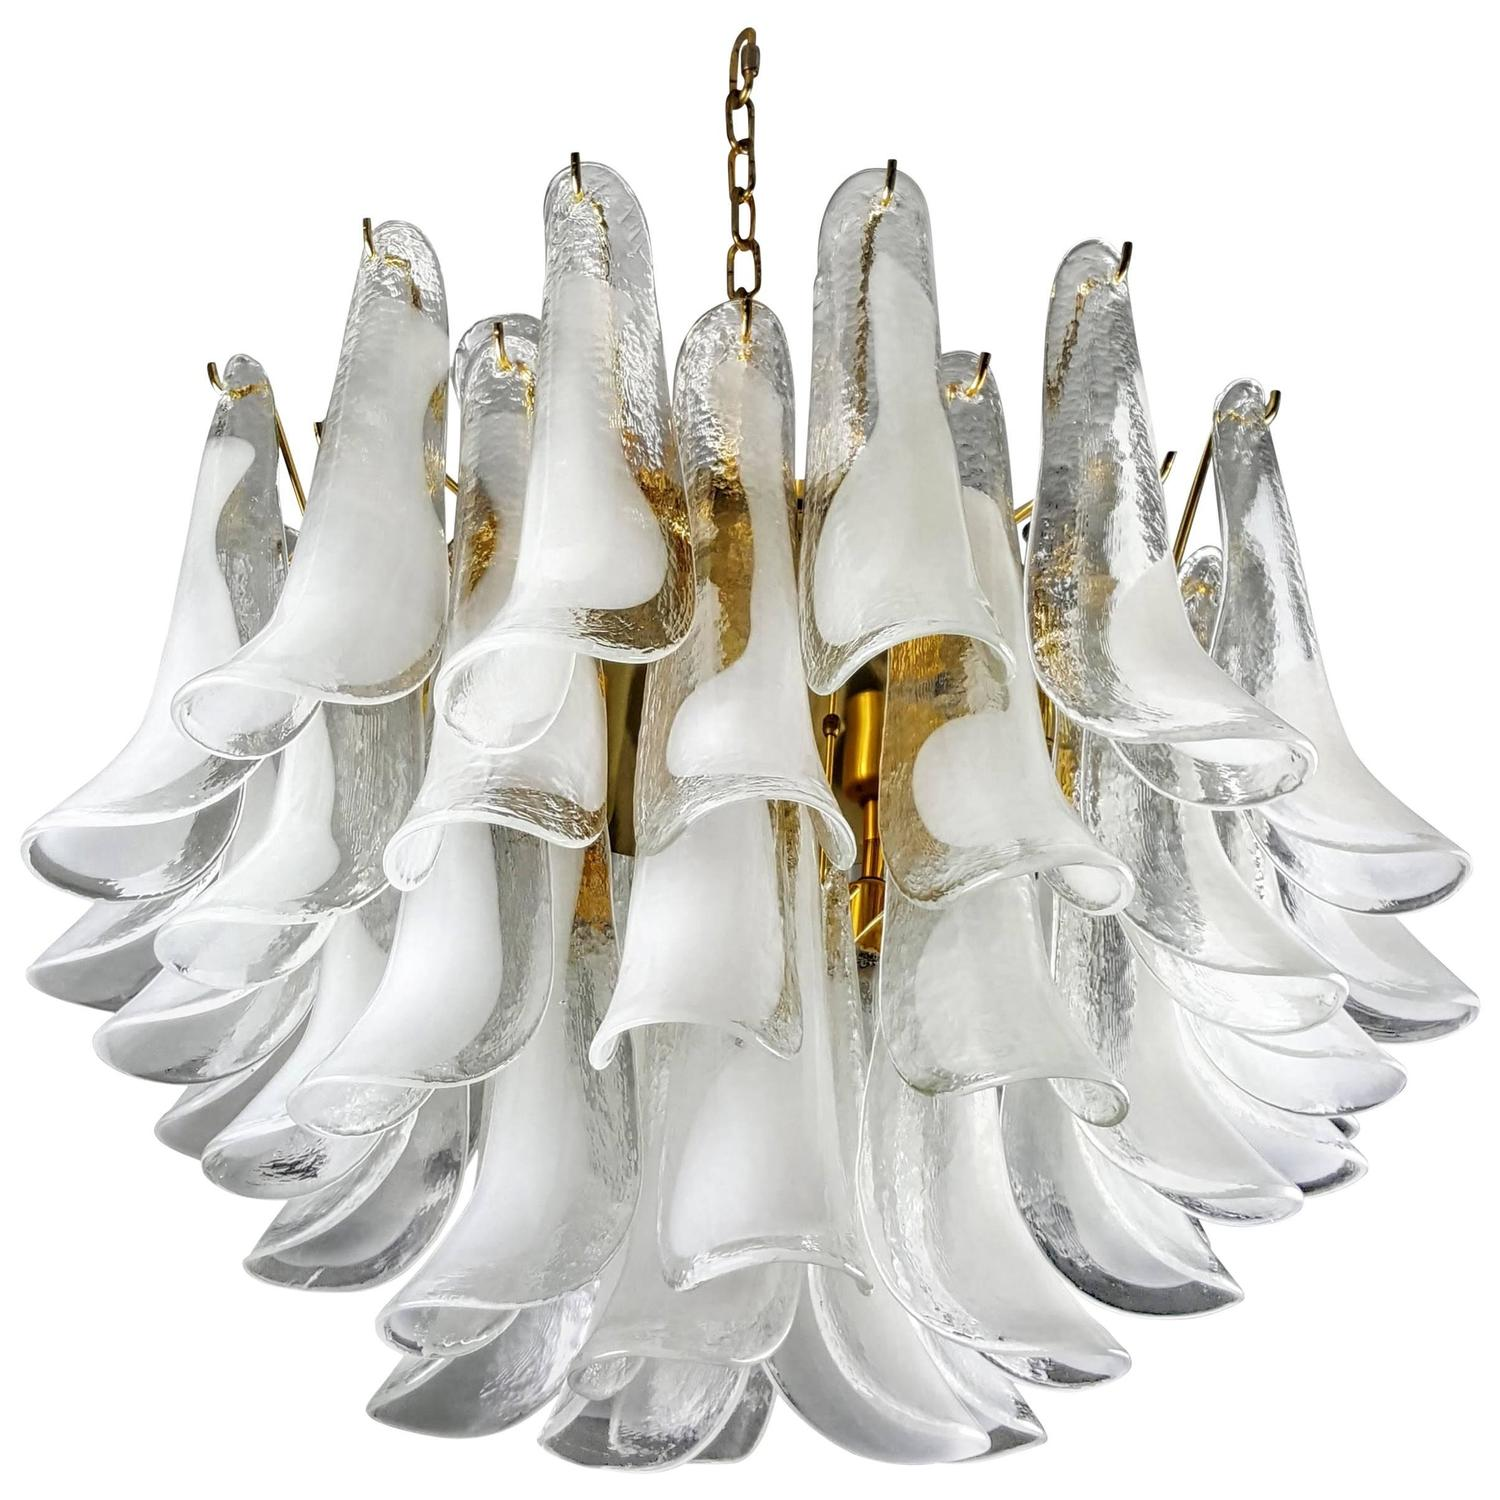 large mazzega murano blown glass shell frond chandelier italy 1970s at 1stdibs - Blown Glass Chandelier